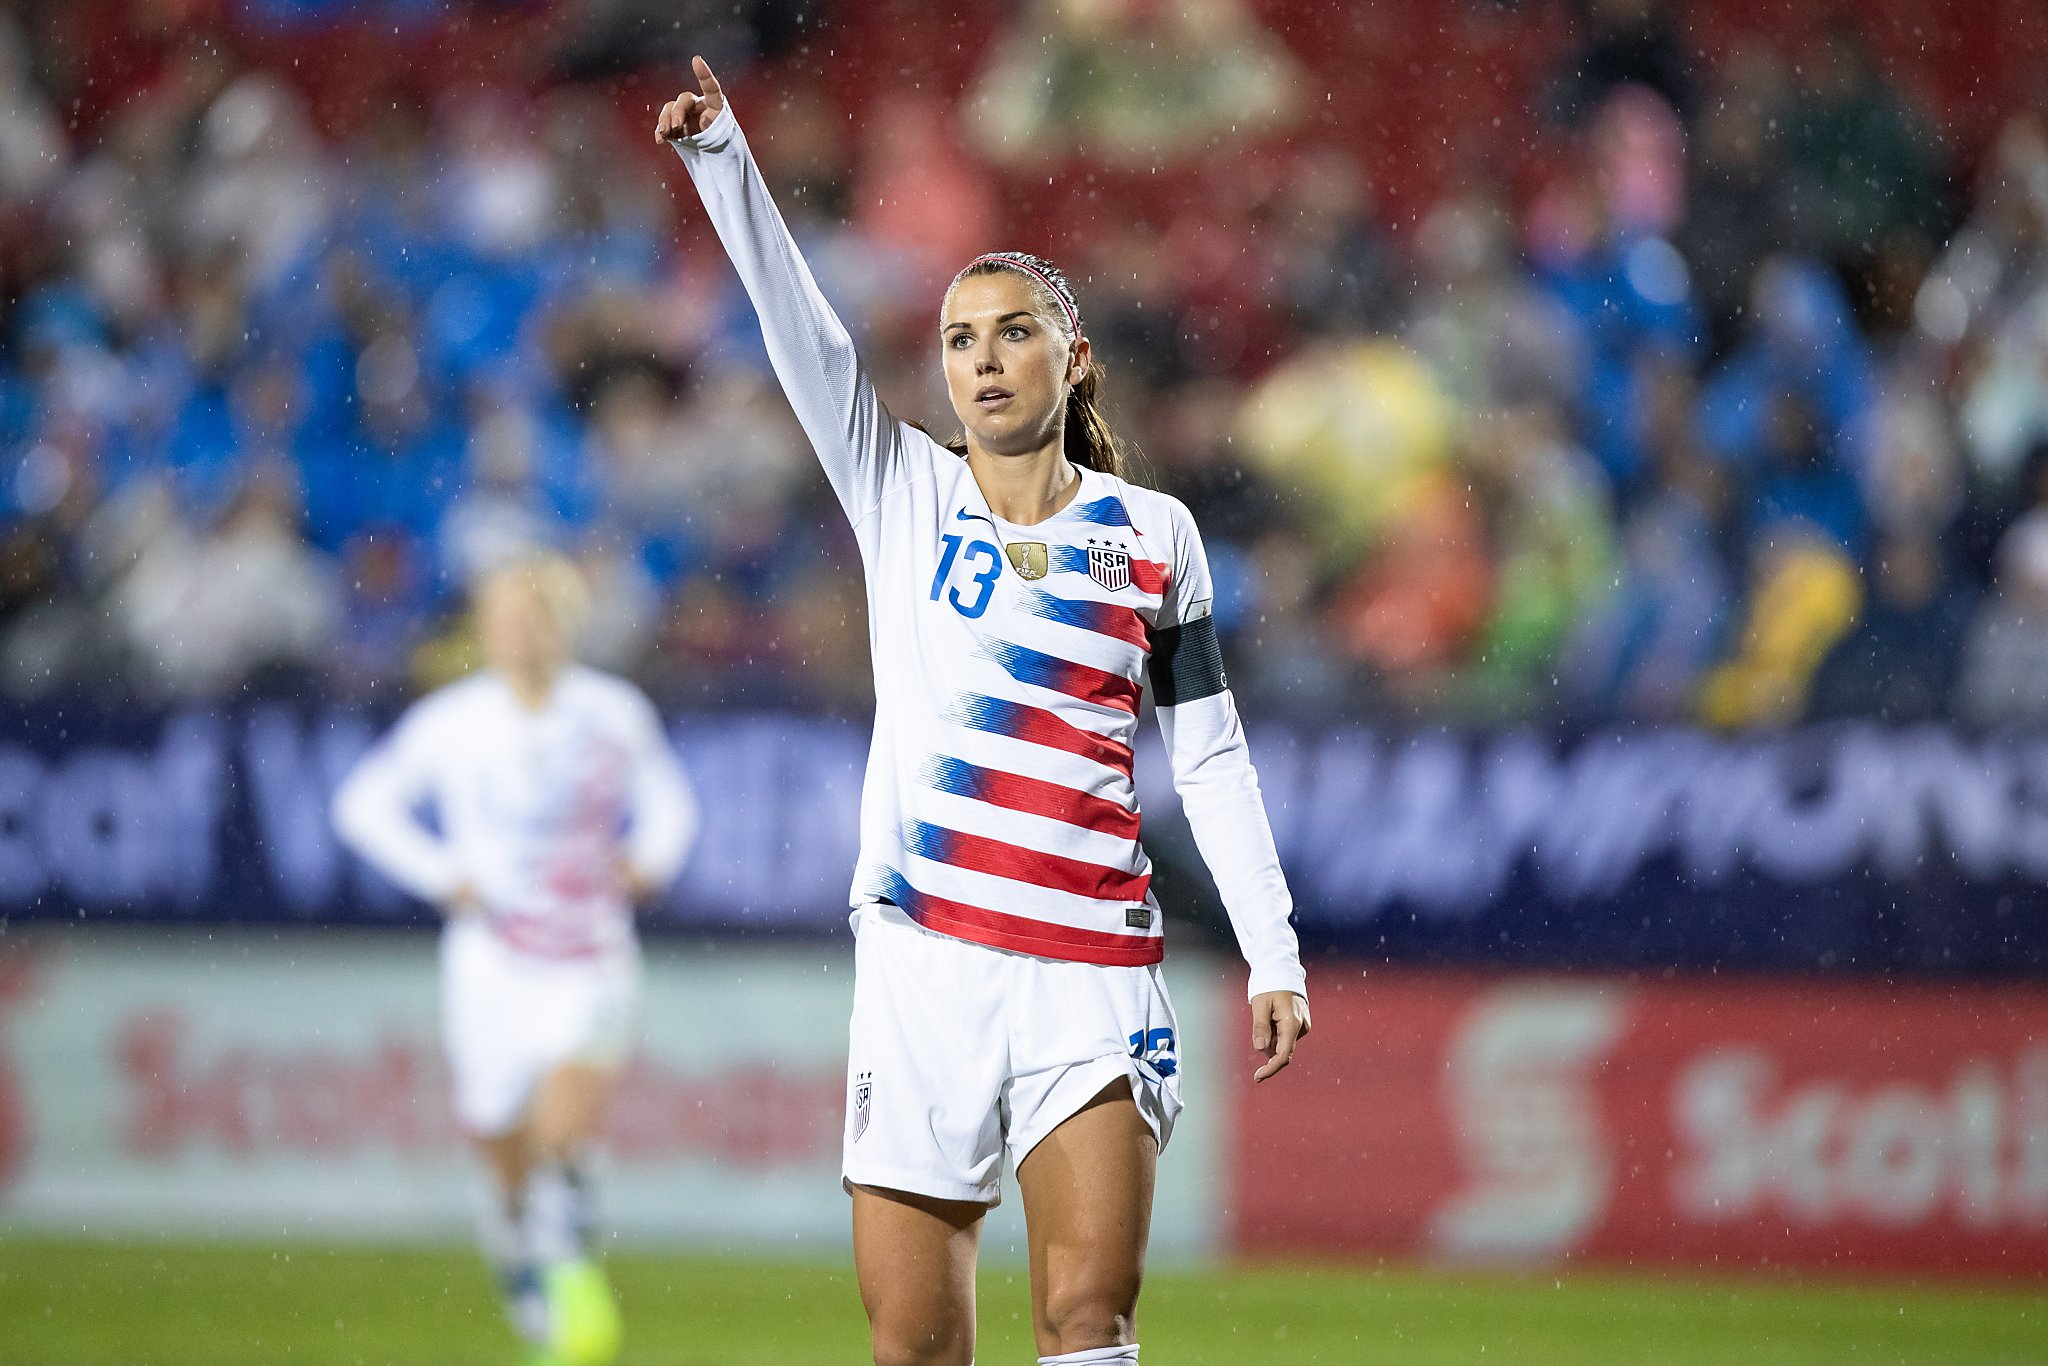 82e92ca5d5c Alex Morgan, U.S. women ready to take on the world - SFChronicle.com